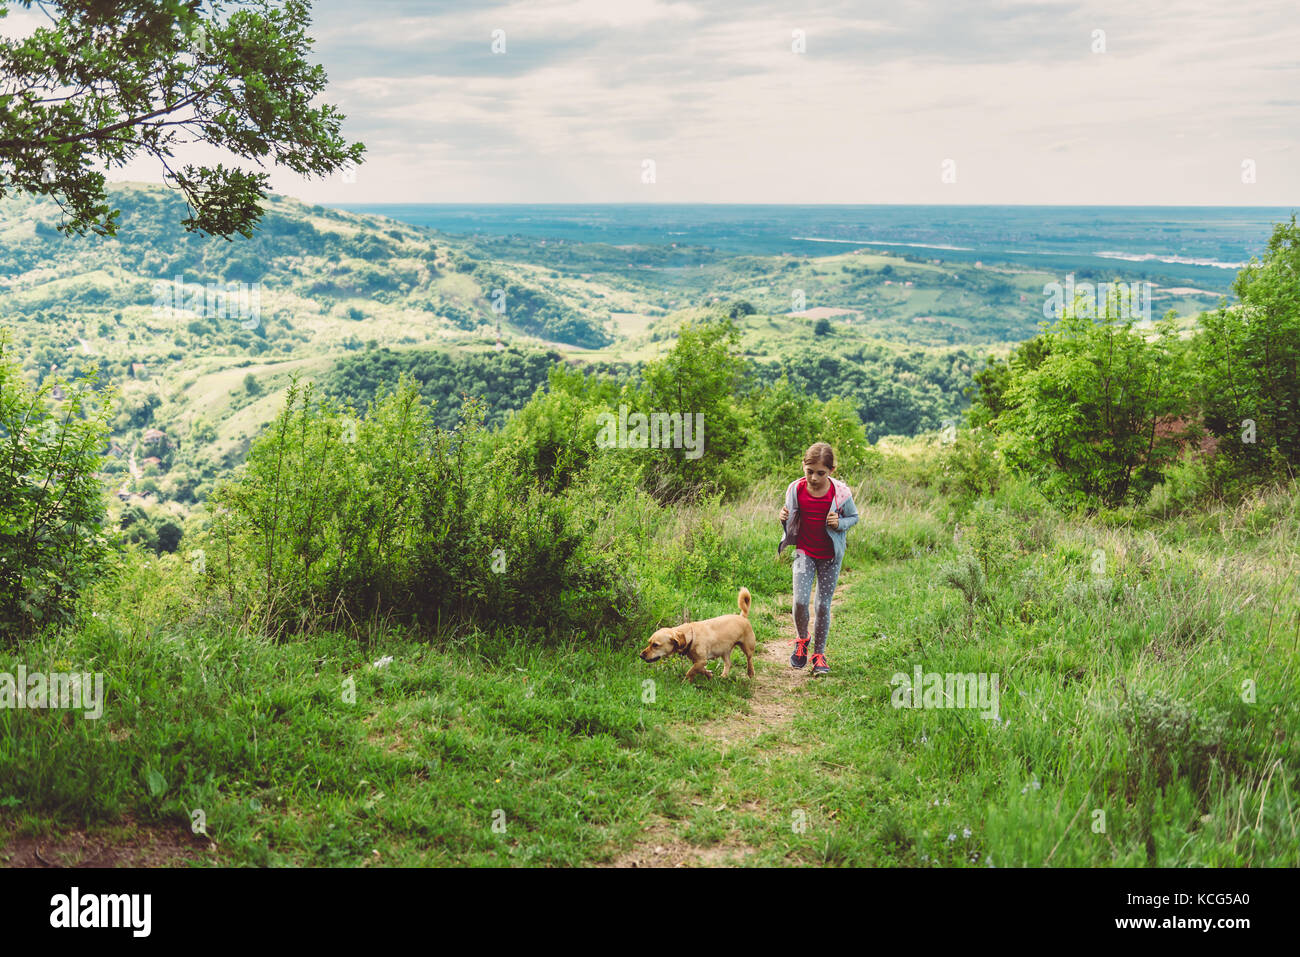 Girl and her dog walking along a hiking trail - Stock Image